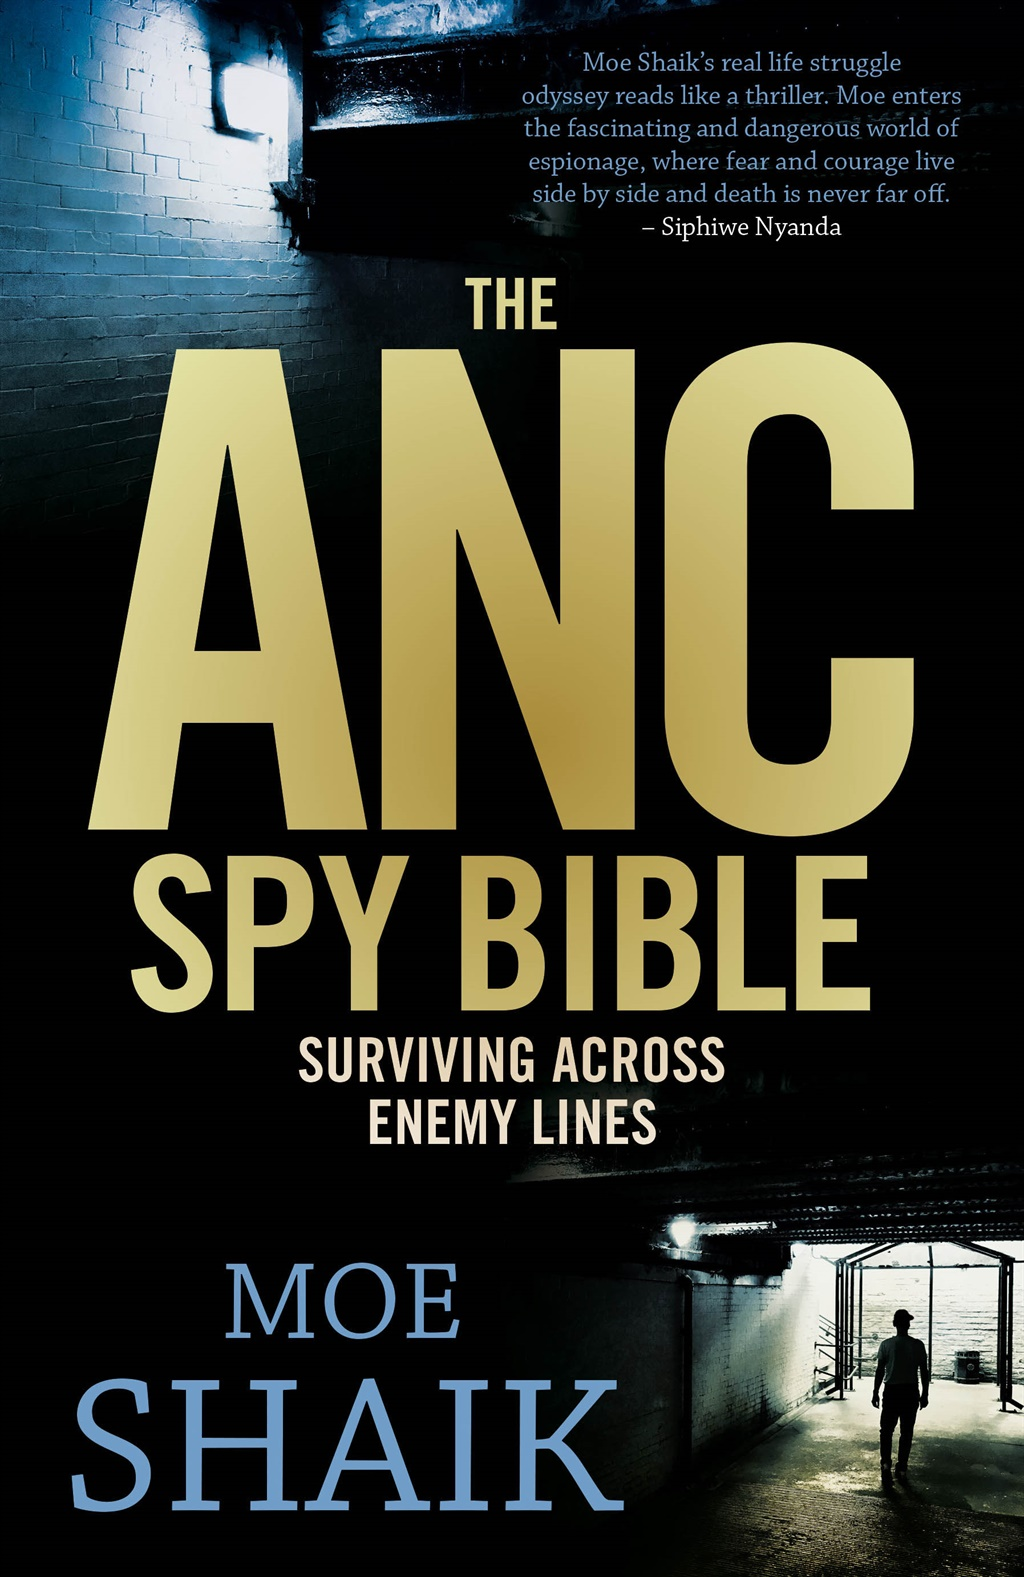 The ANC Spy Bible: Surviving across enemy lines by Moe Shaik is published by Tafelberg Publishers.